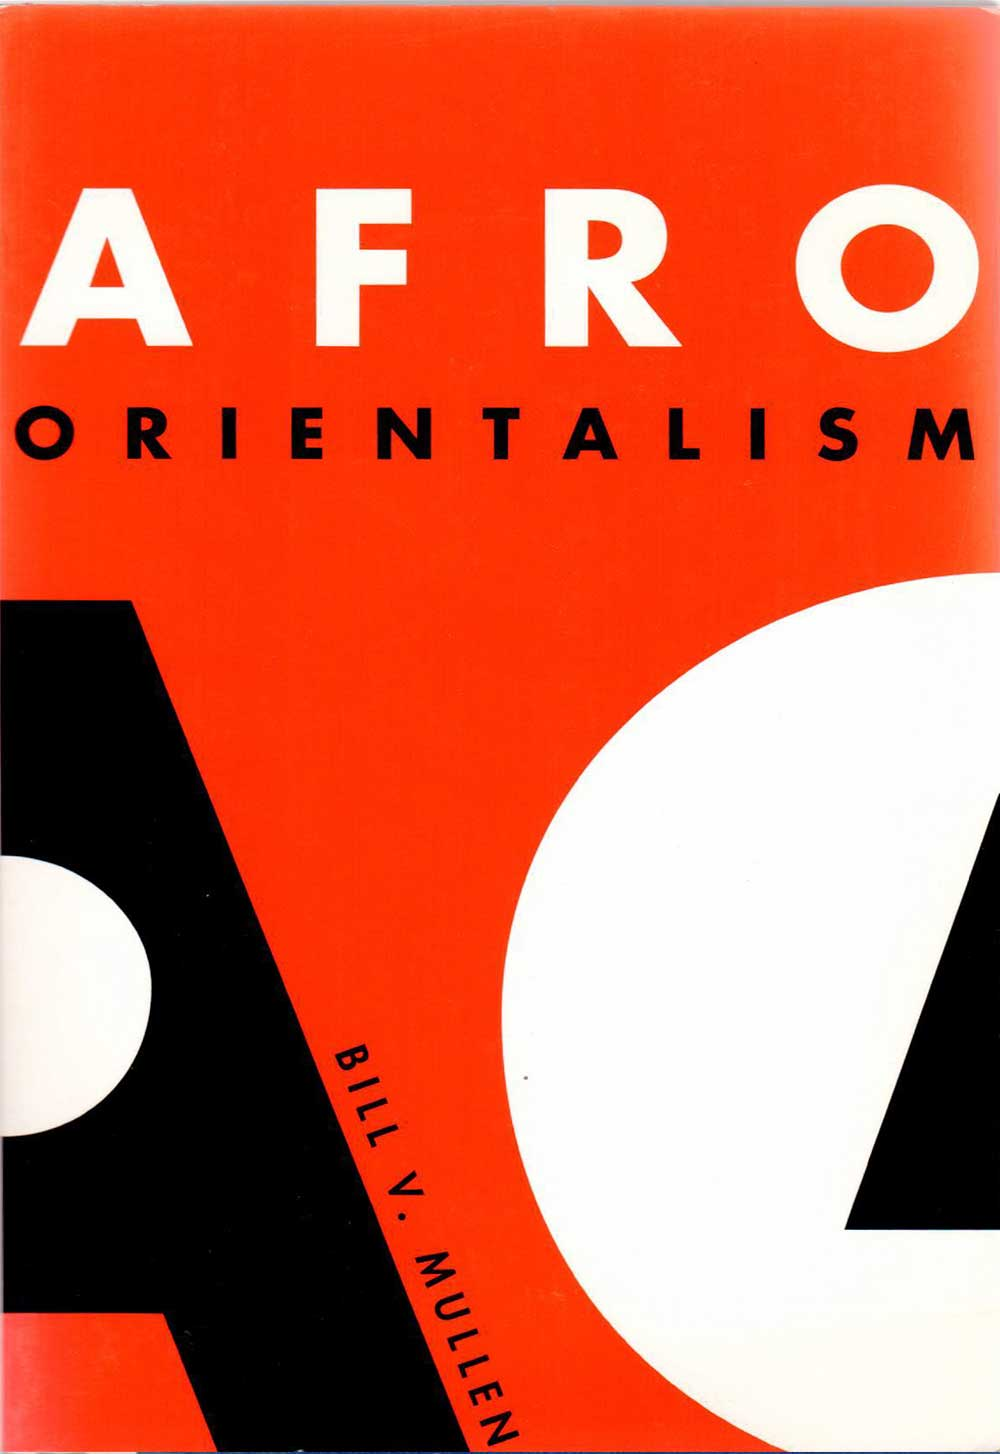 mullen-book-cover6-afro-orient-1000px.jpg